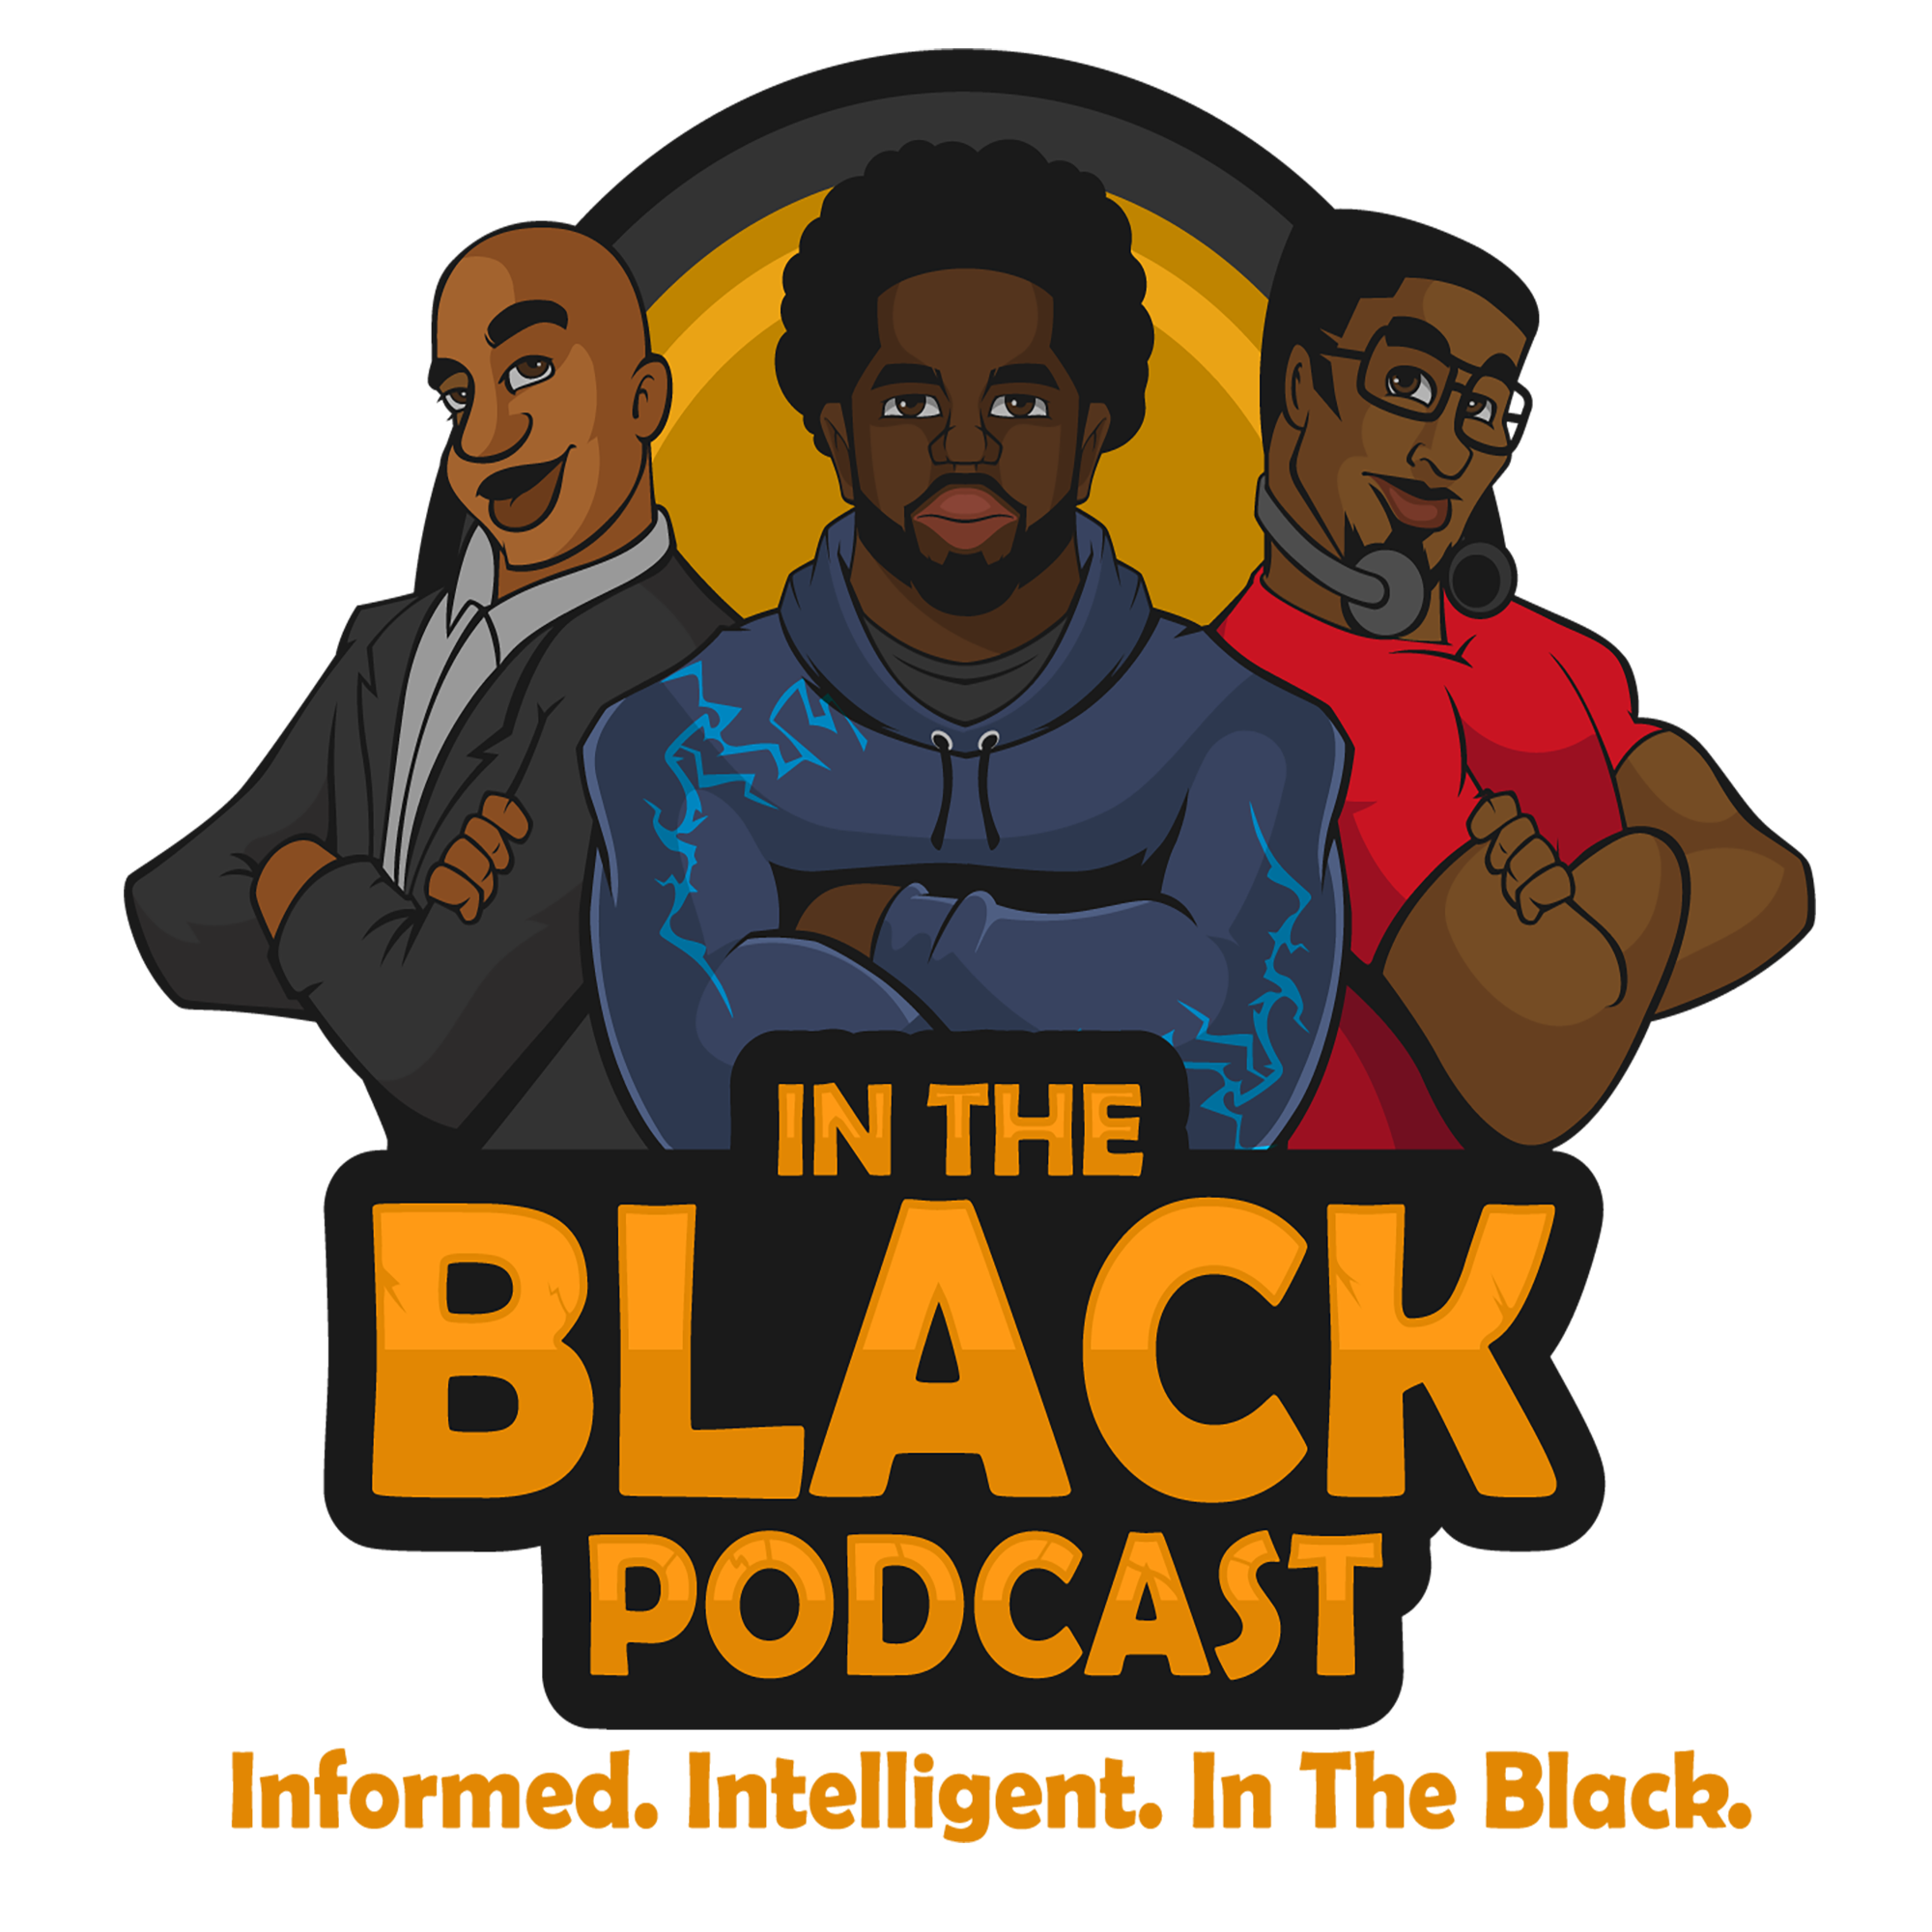 In The Black Podcast show art